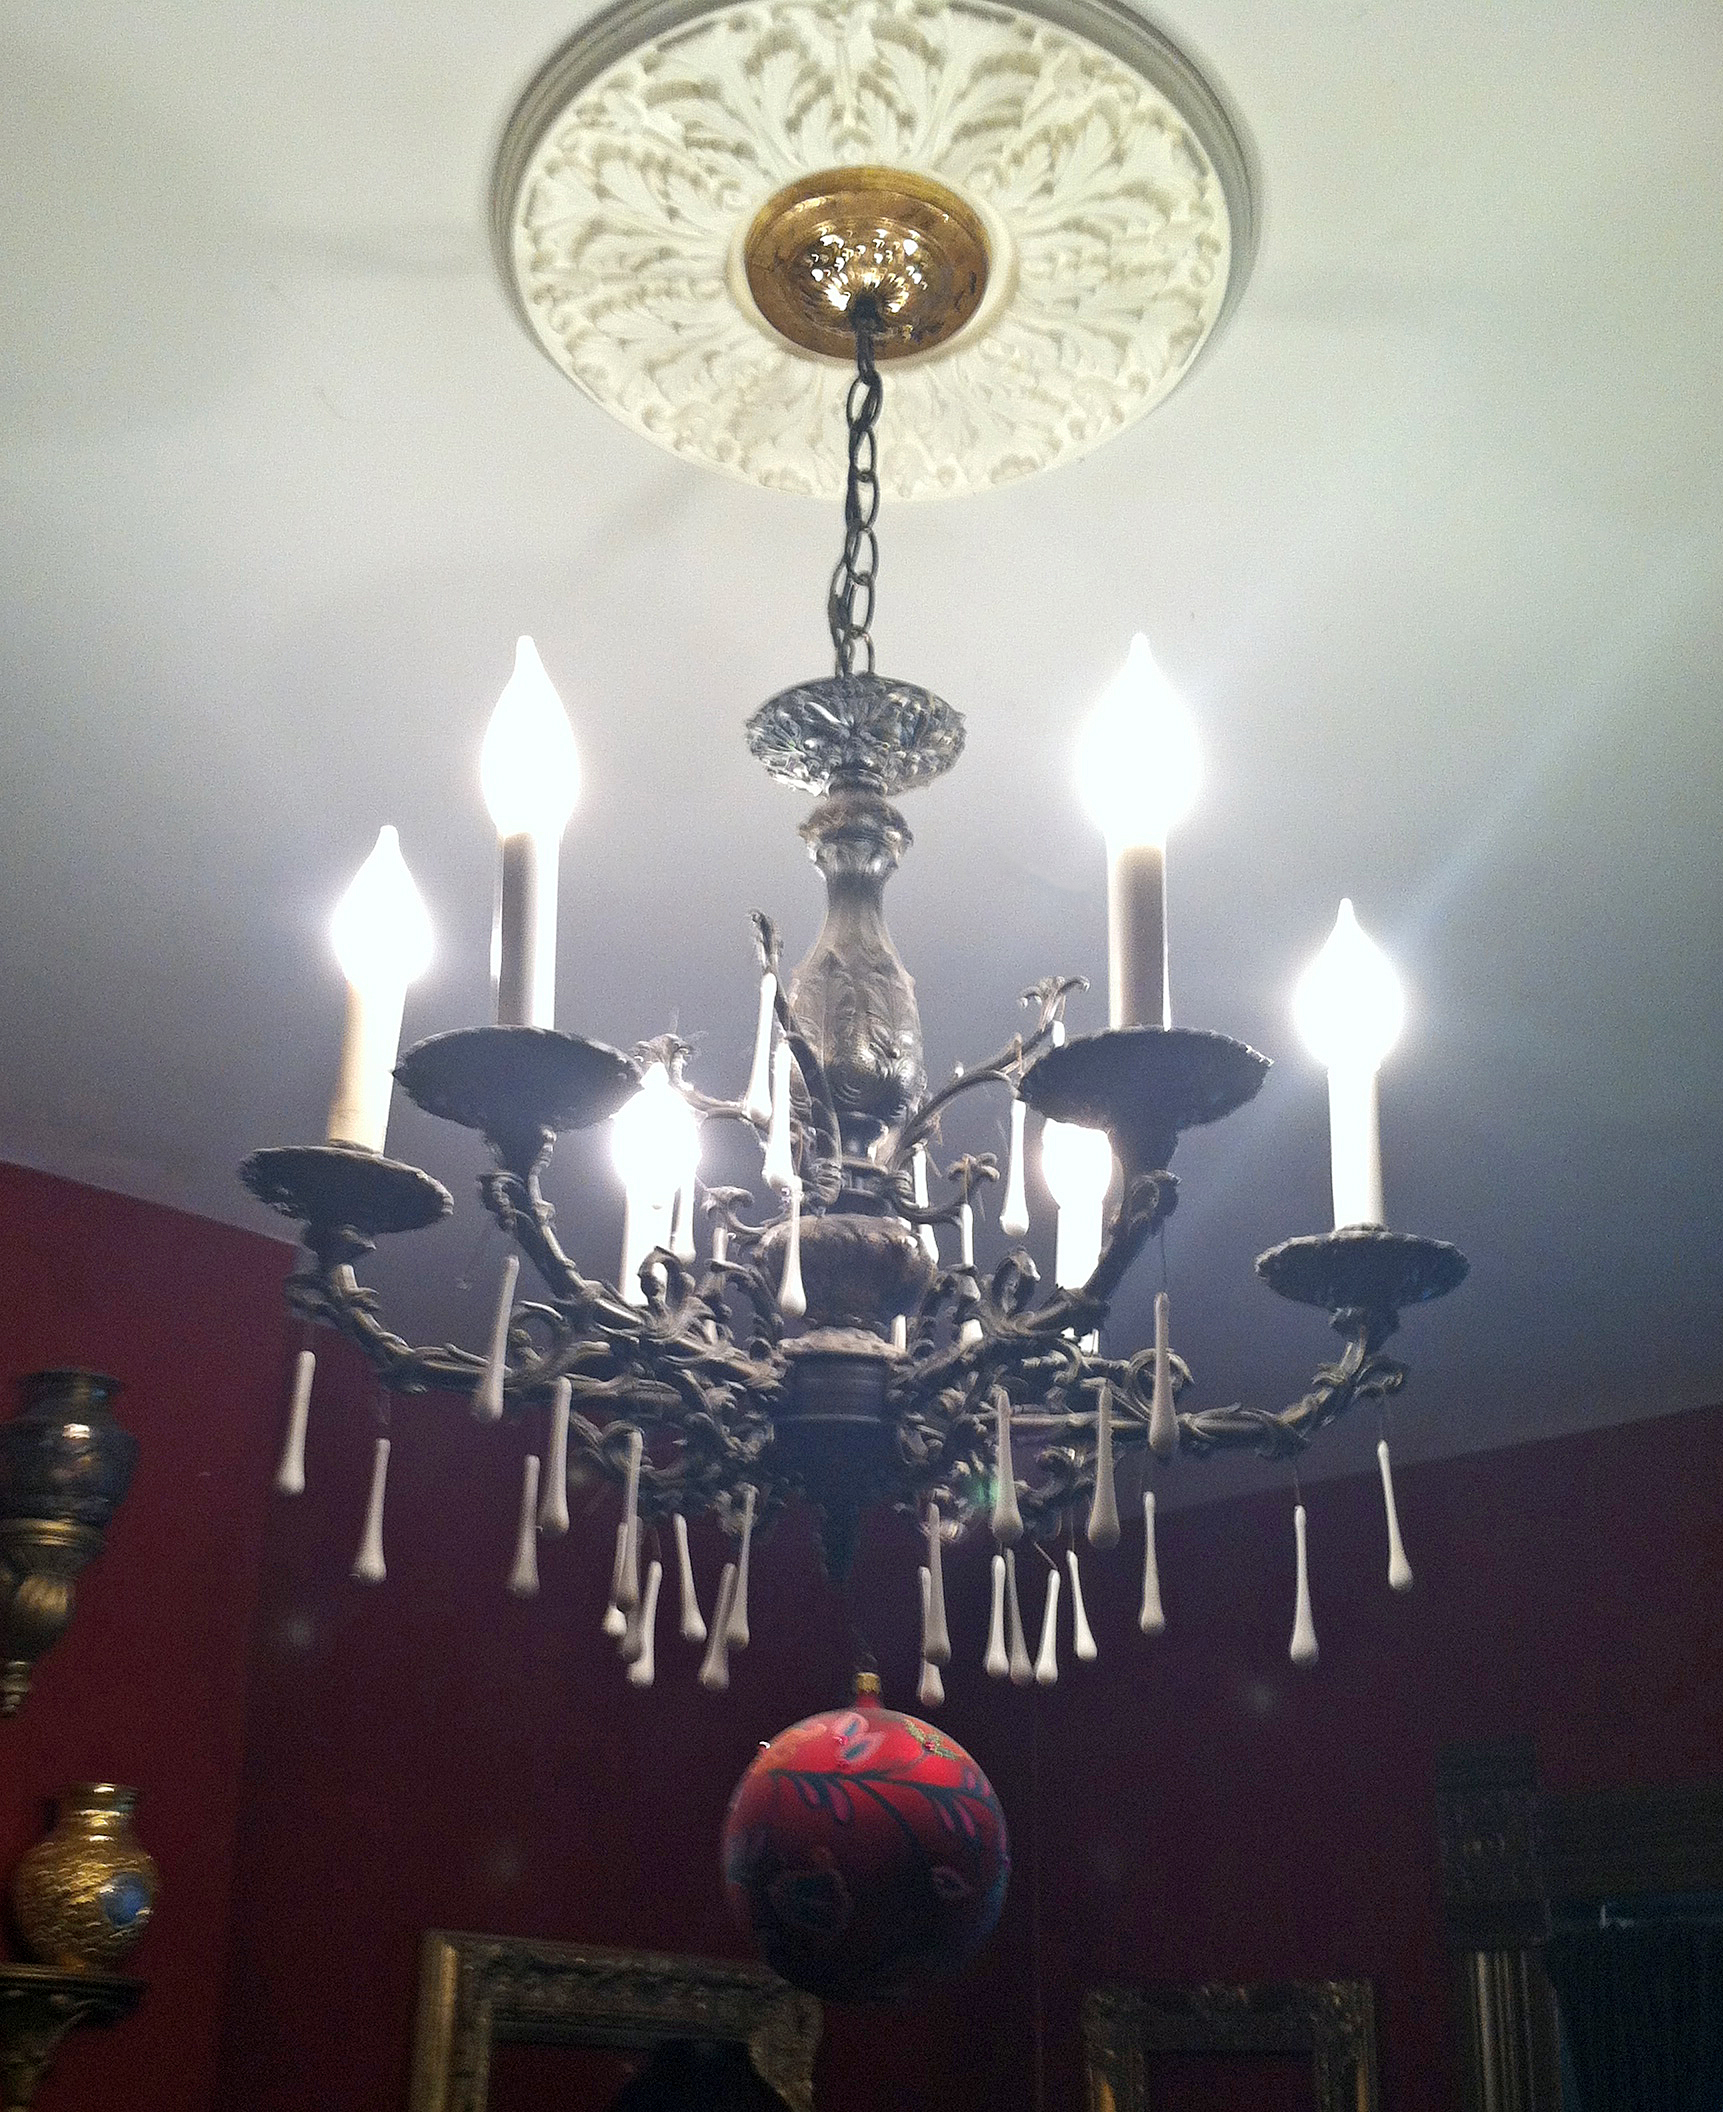 A Tale of Two Chandeliers DIY Lighting Make overs